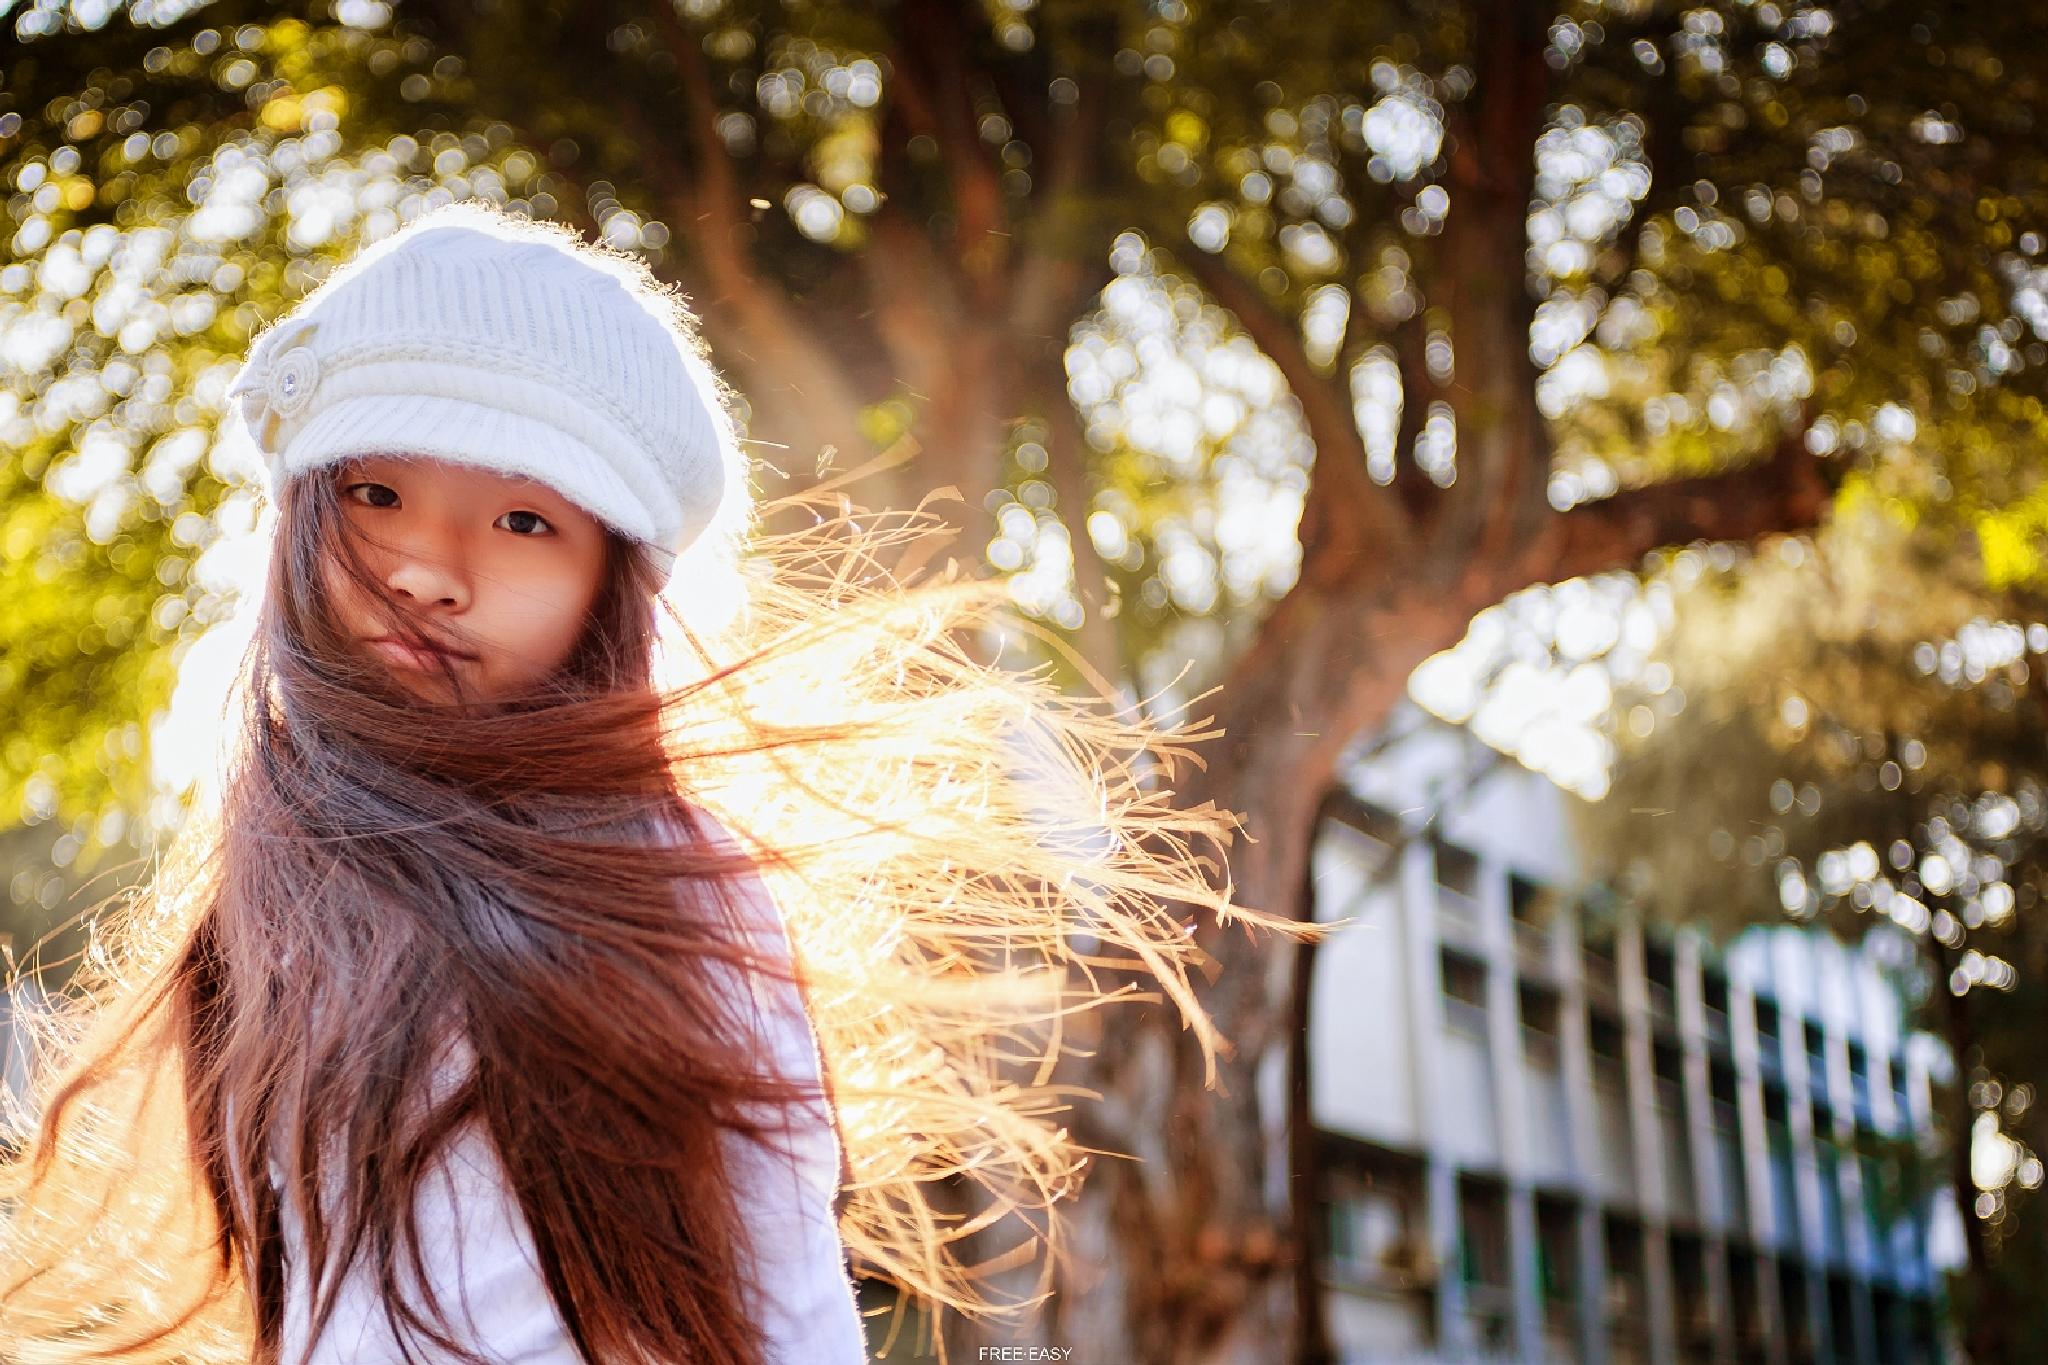 Contax Carl Zeiss T* 45mm F2.8 by 鄭阿乃